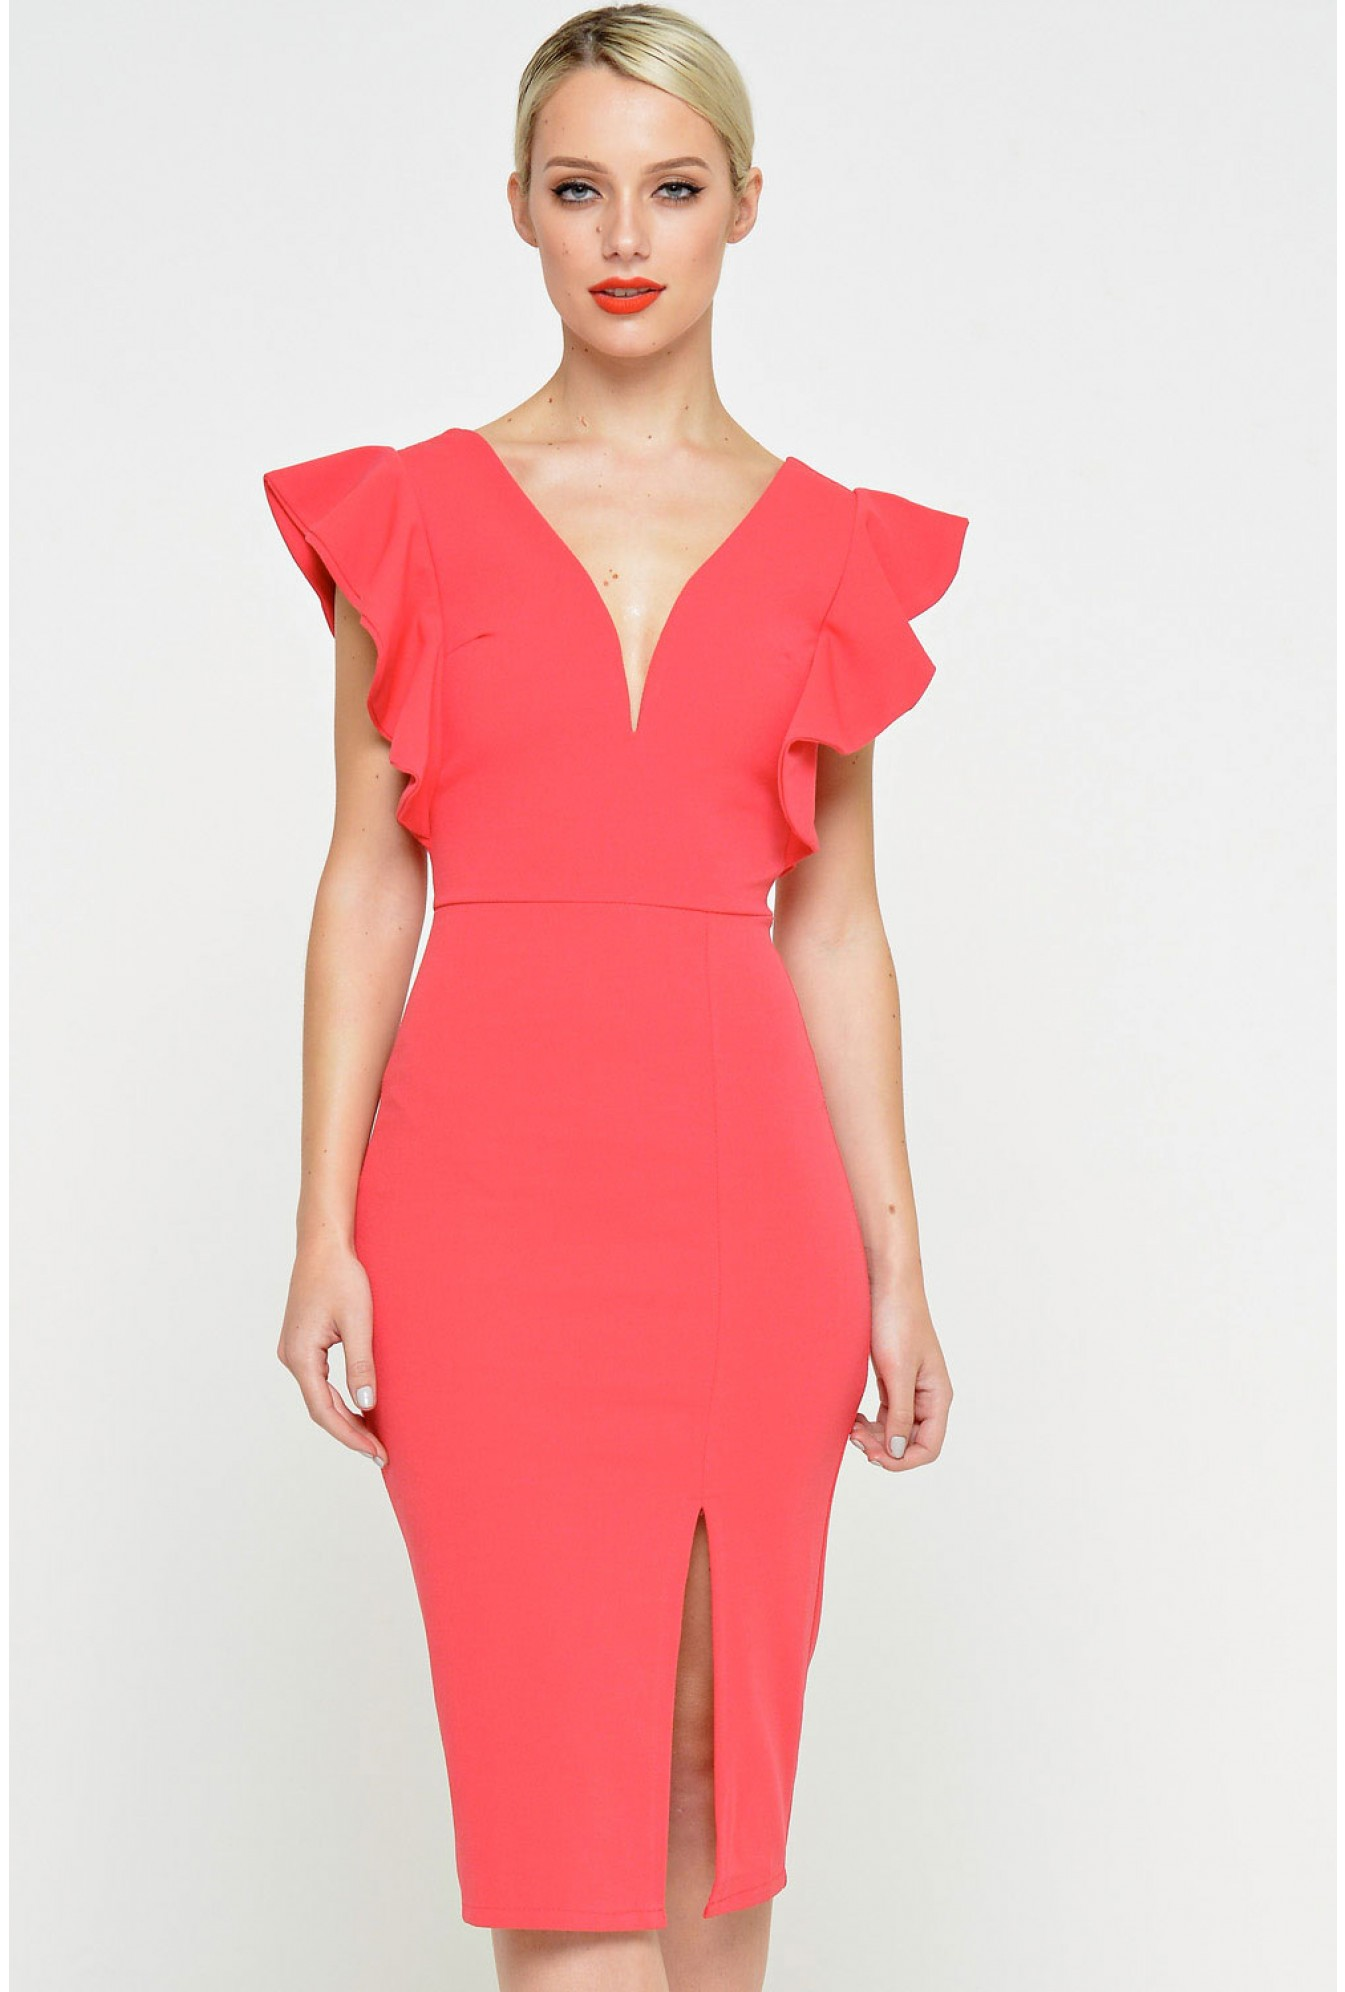 4cfd40d4b92d Wal G Diana Plunge Neck Midi Dress in Coral | iCLOTHING